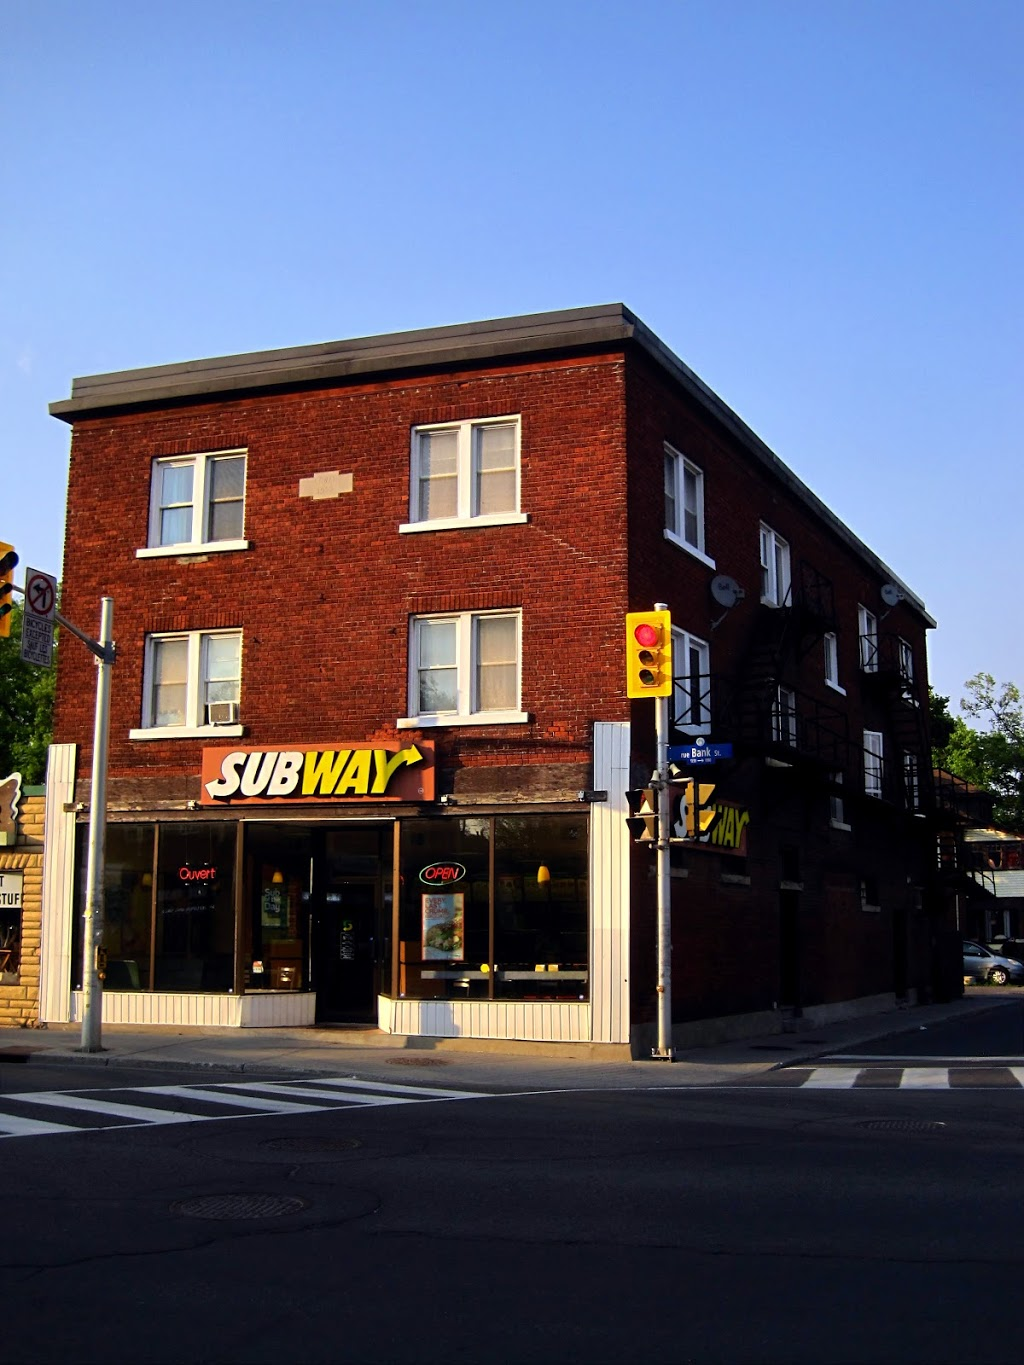 Subway | restaurant | 1227 Bank St, Ottawa, ON K1S 3W3, Canada | 6135261717 OR +1 613-526-1717